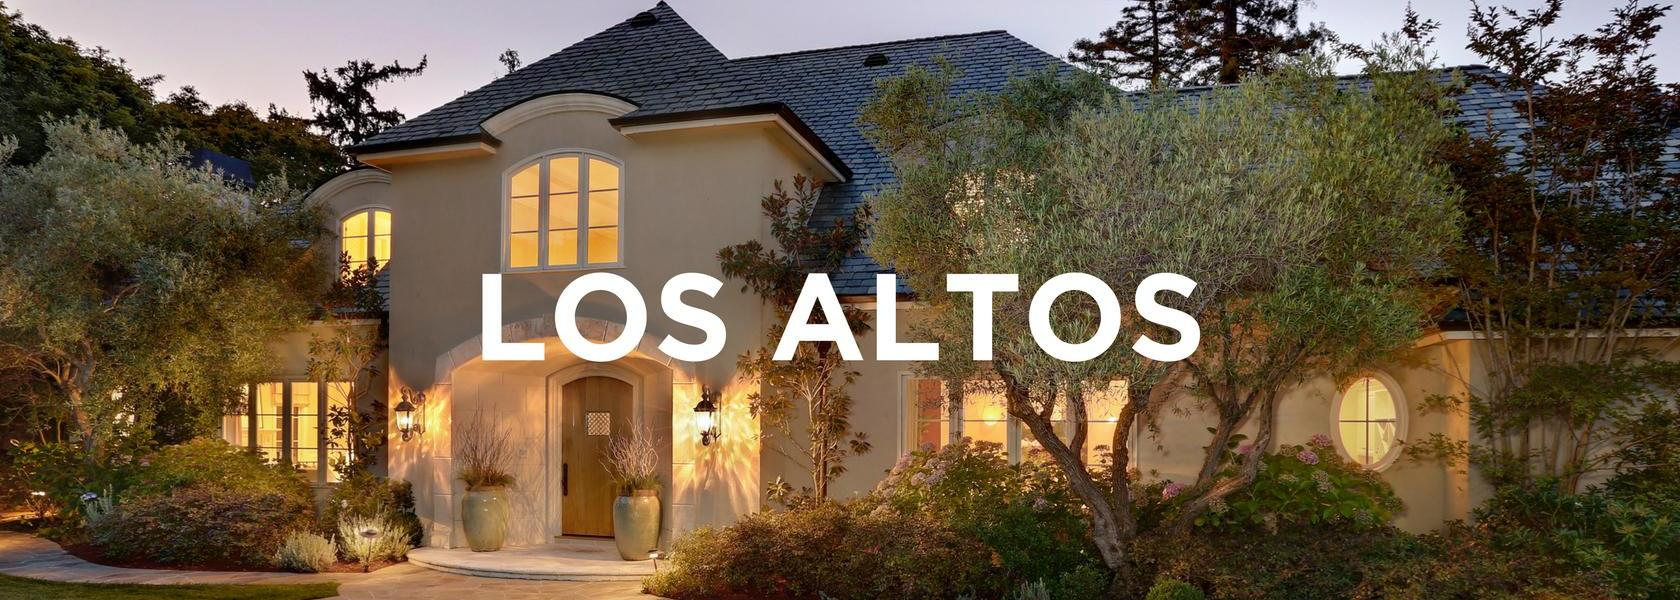 Los Altos